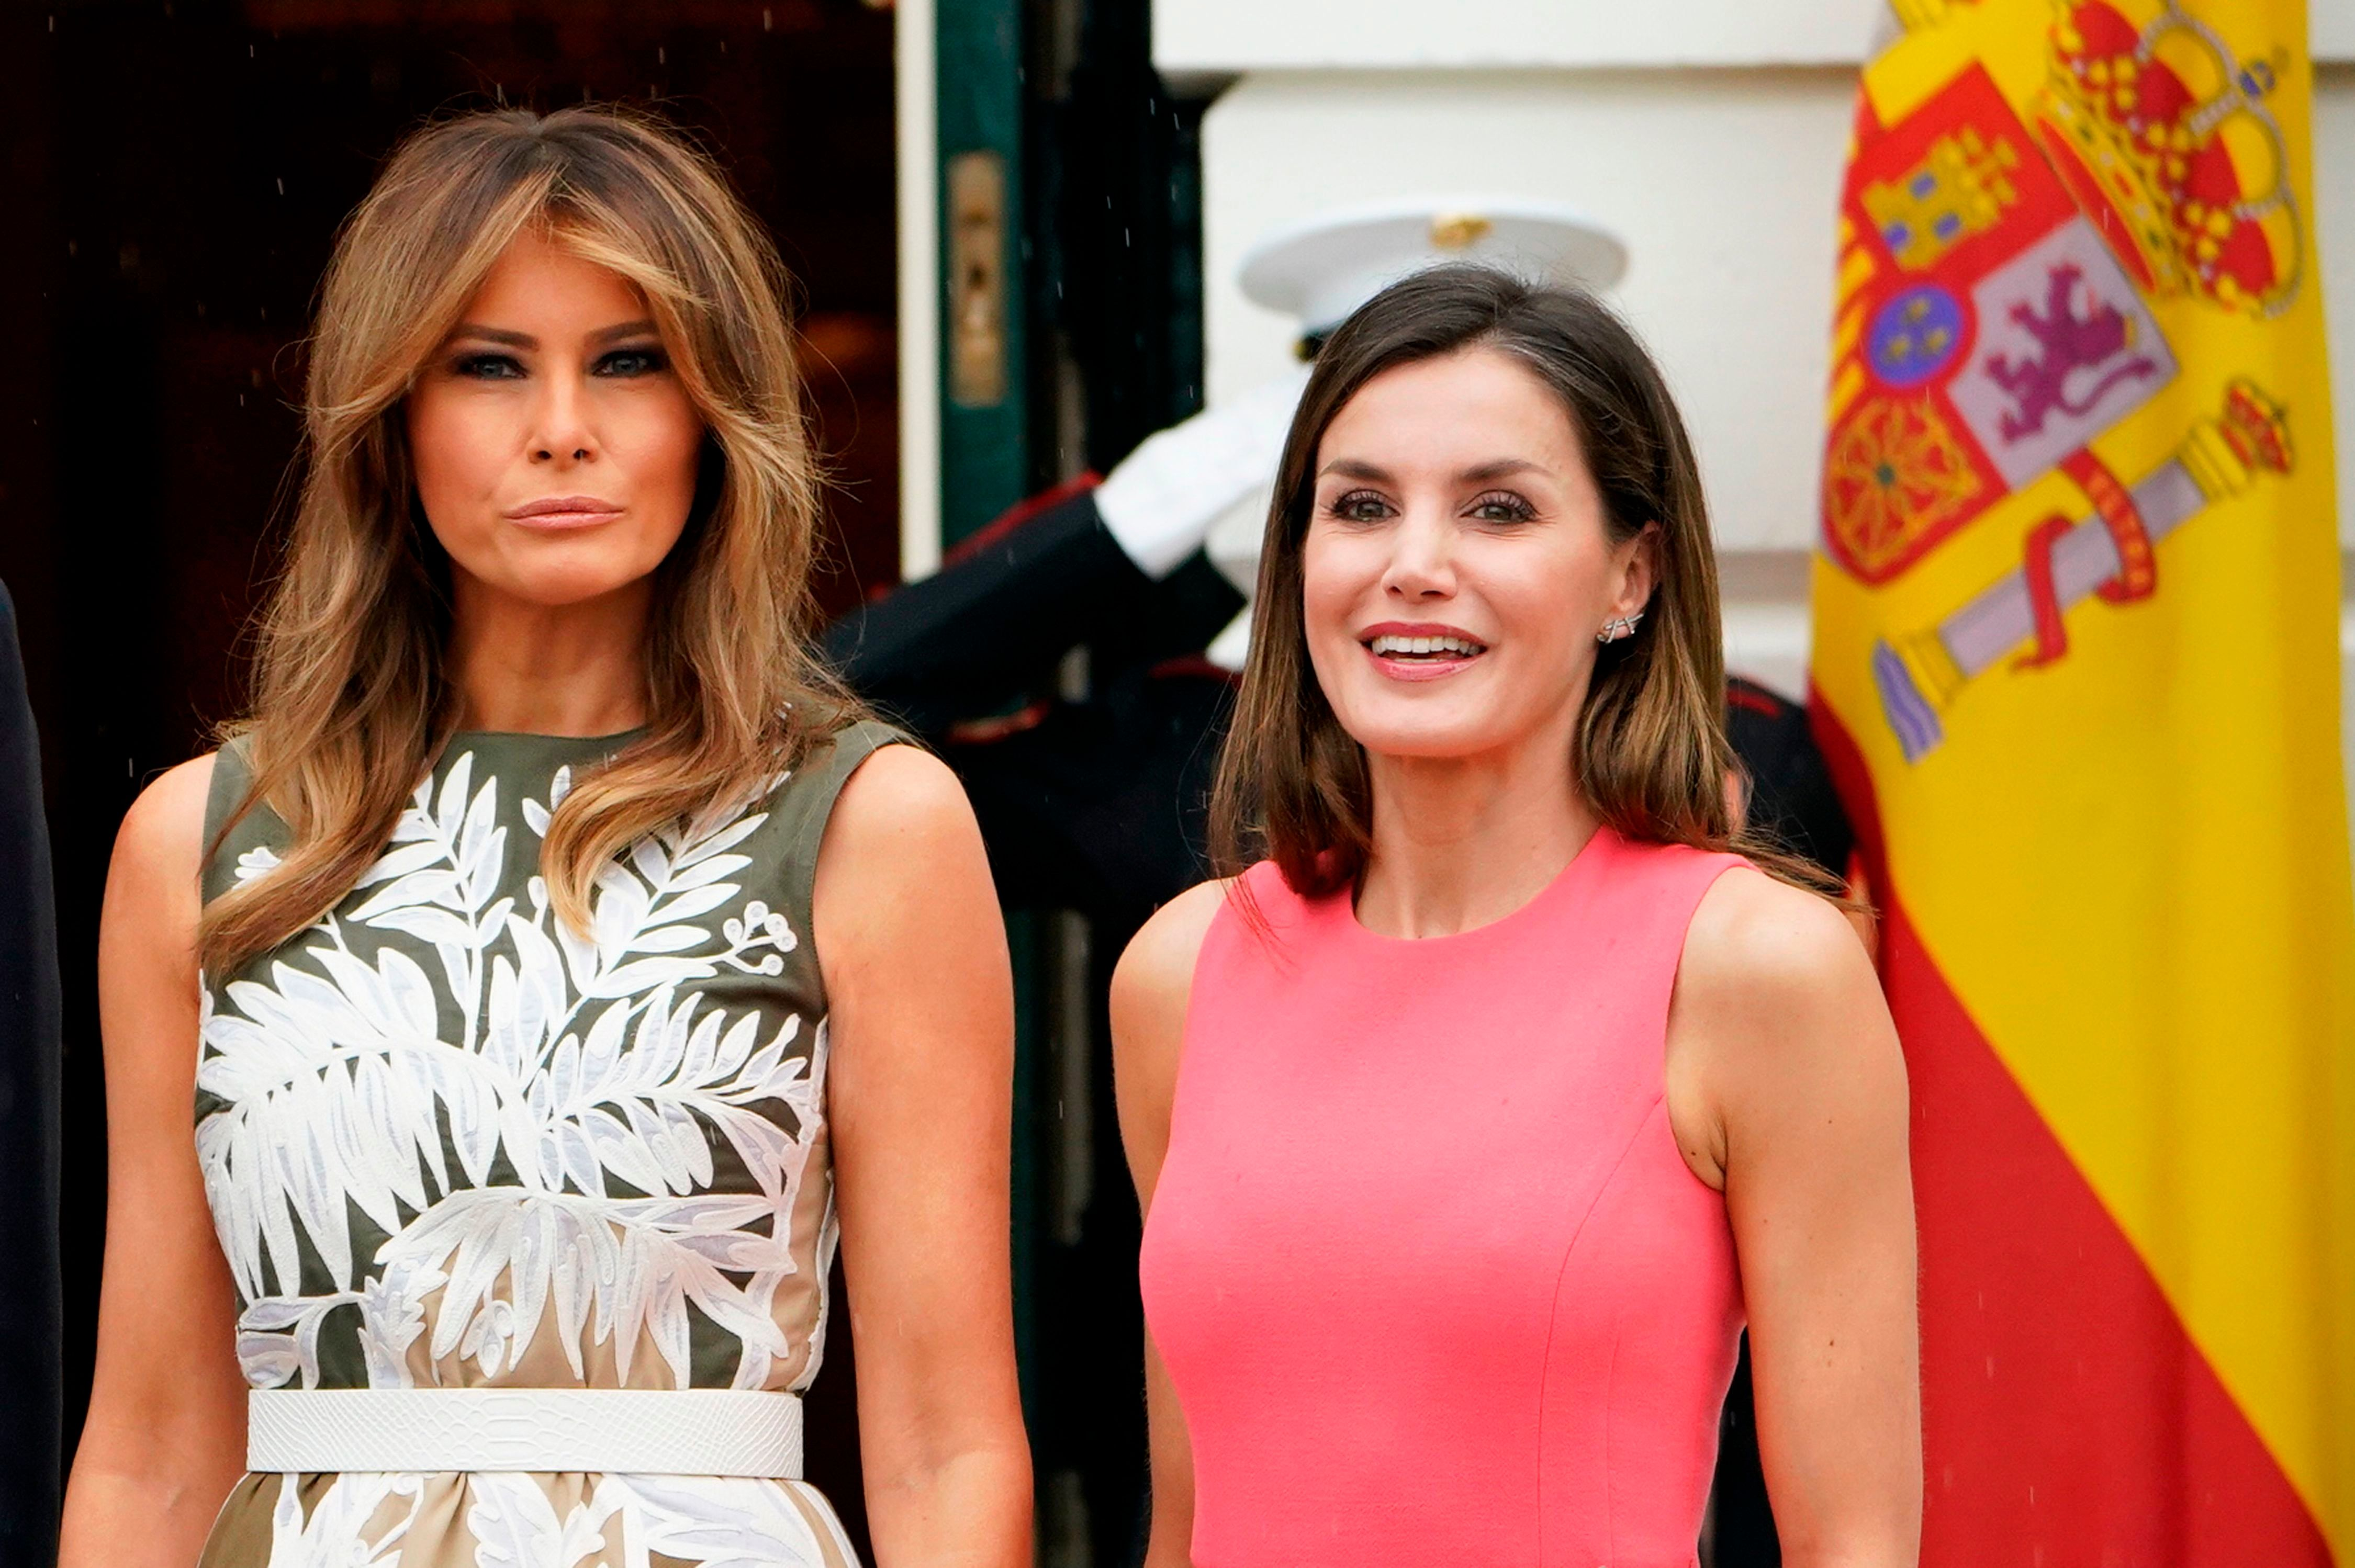 US First Lady Melania Trump is seen with Spain's Queen Letizia upon arrival at the White House in Washington, DC on June 19, 2018. (Photo by Mandel Ngan / AFP)        (Photo credit should read MANDEL NGAN/AFP/Getty Images)